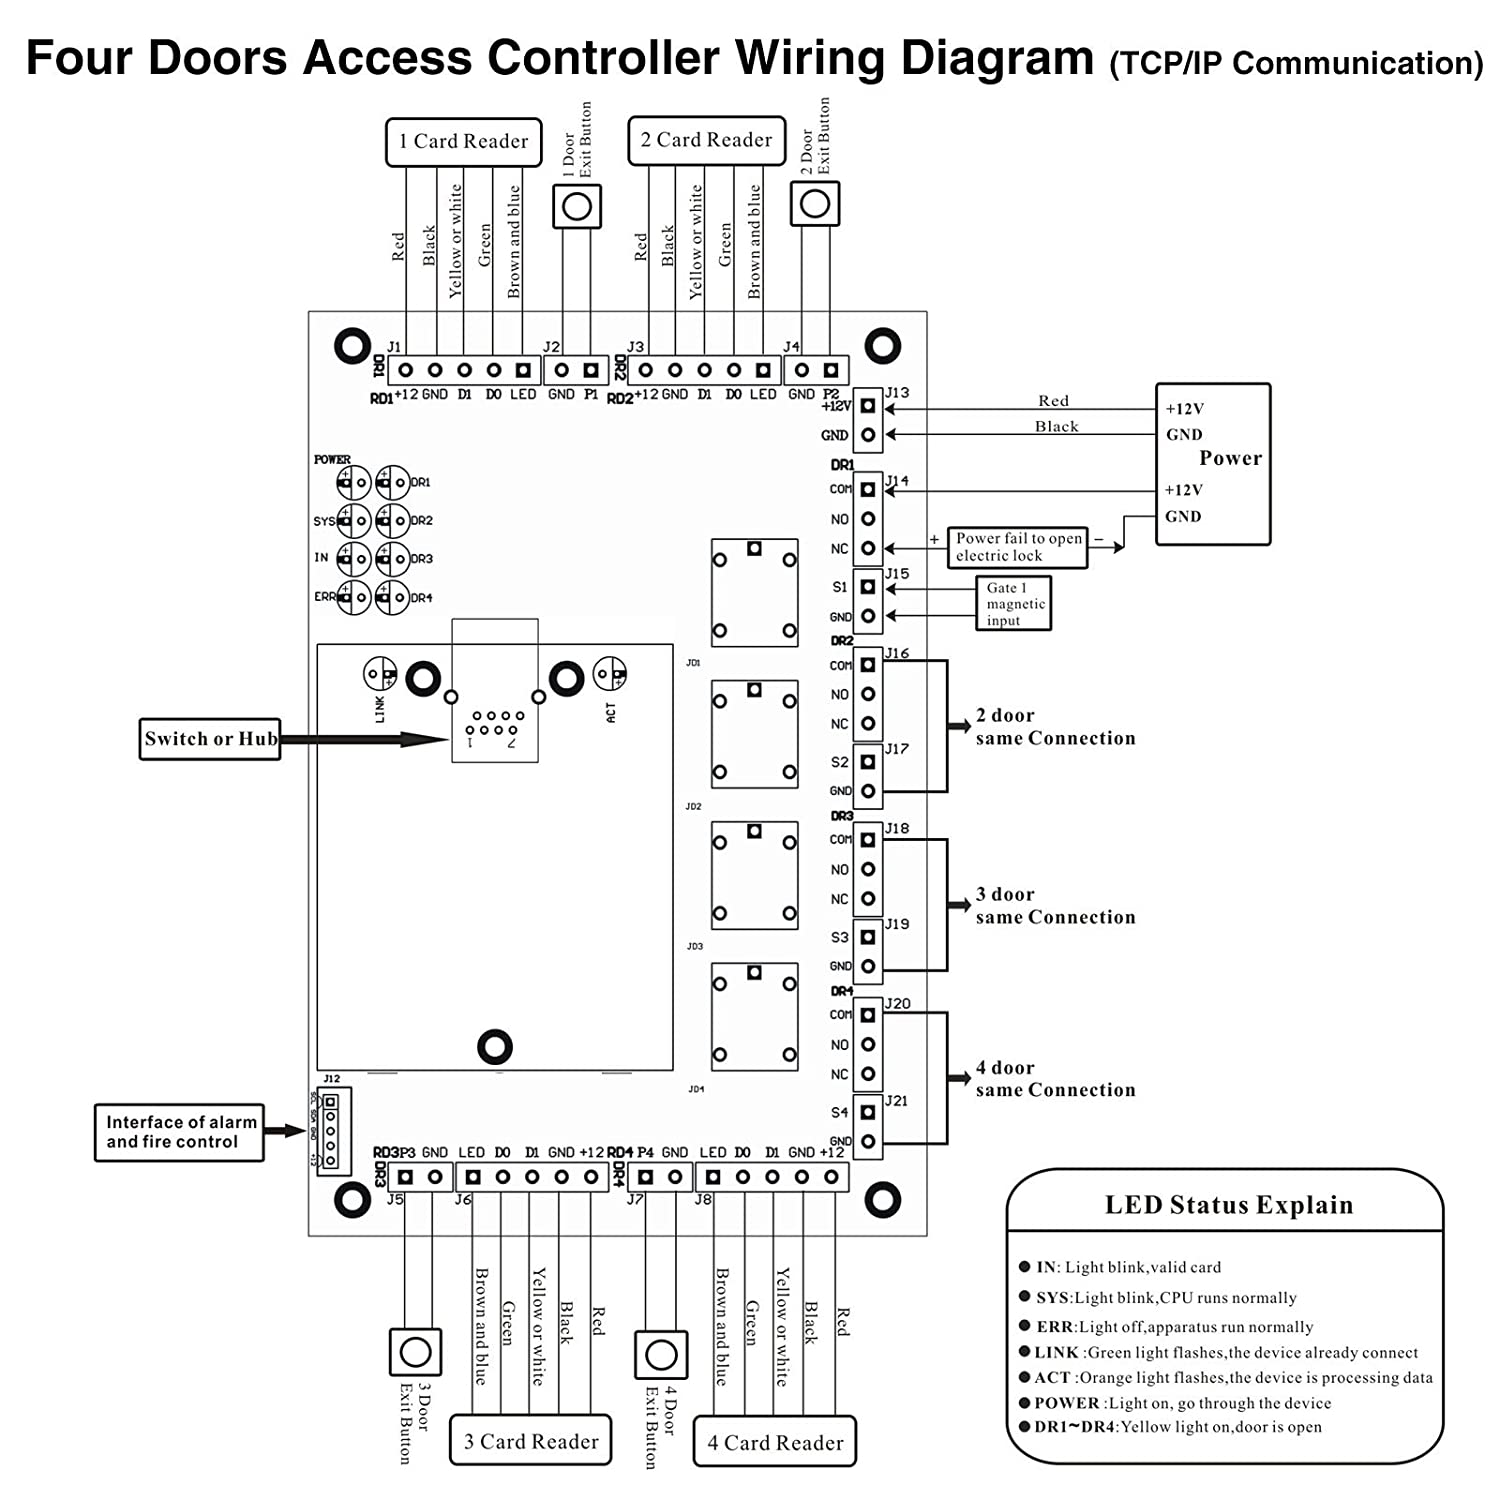 Professional Access Control Door Board Panel 4 Doors Wiring Diagram 3 5 Mm Headphone Jack Gecko G540 Readers Controller Office Tcp Ip Network Extension Camera Photo